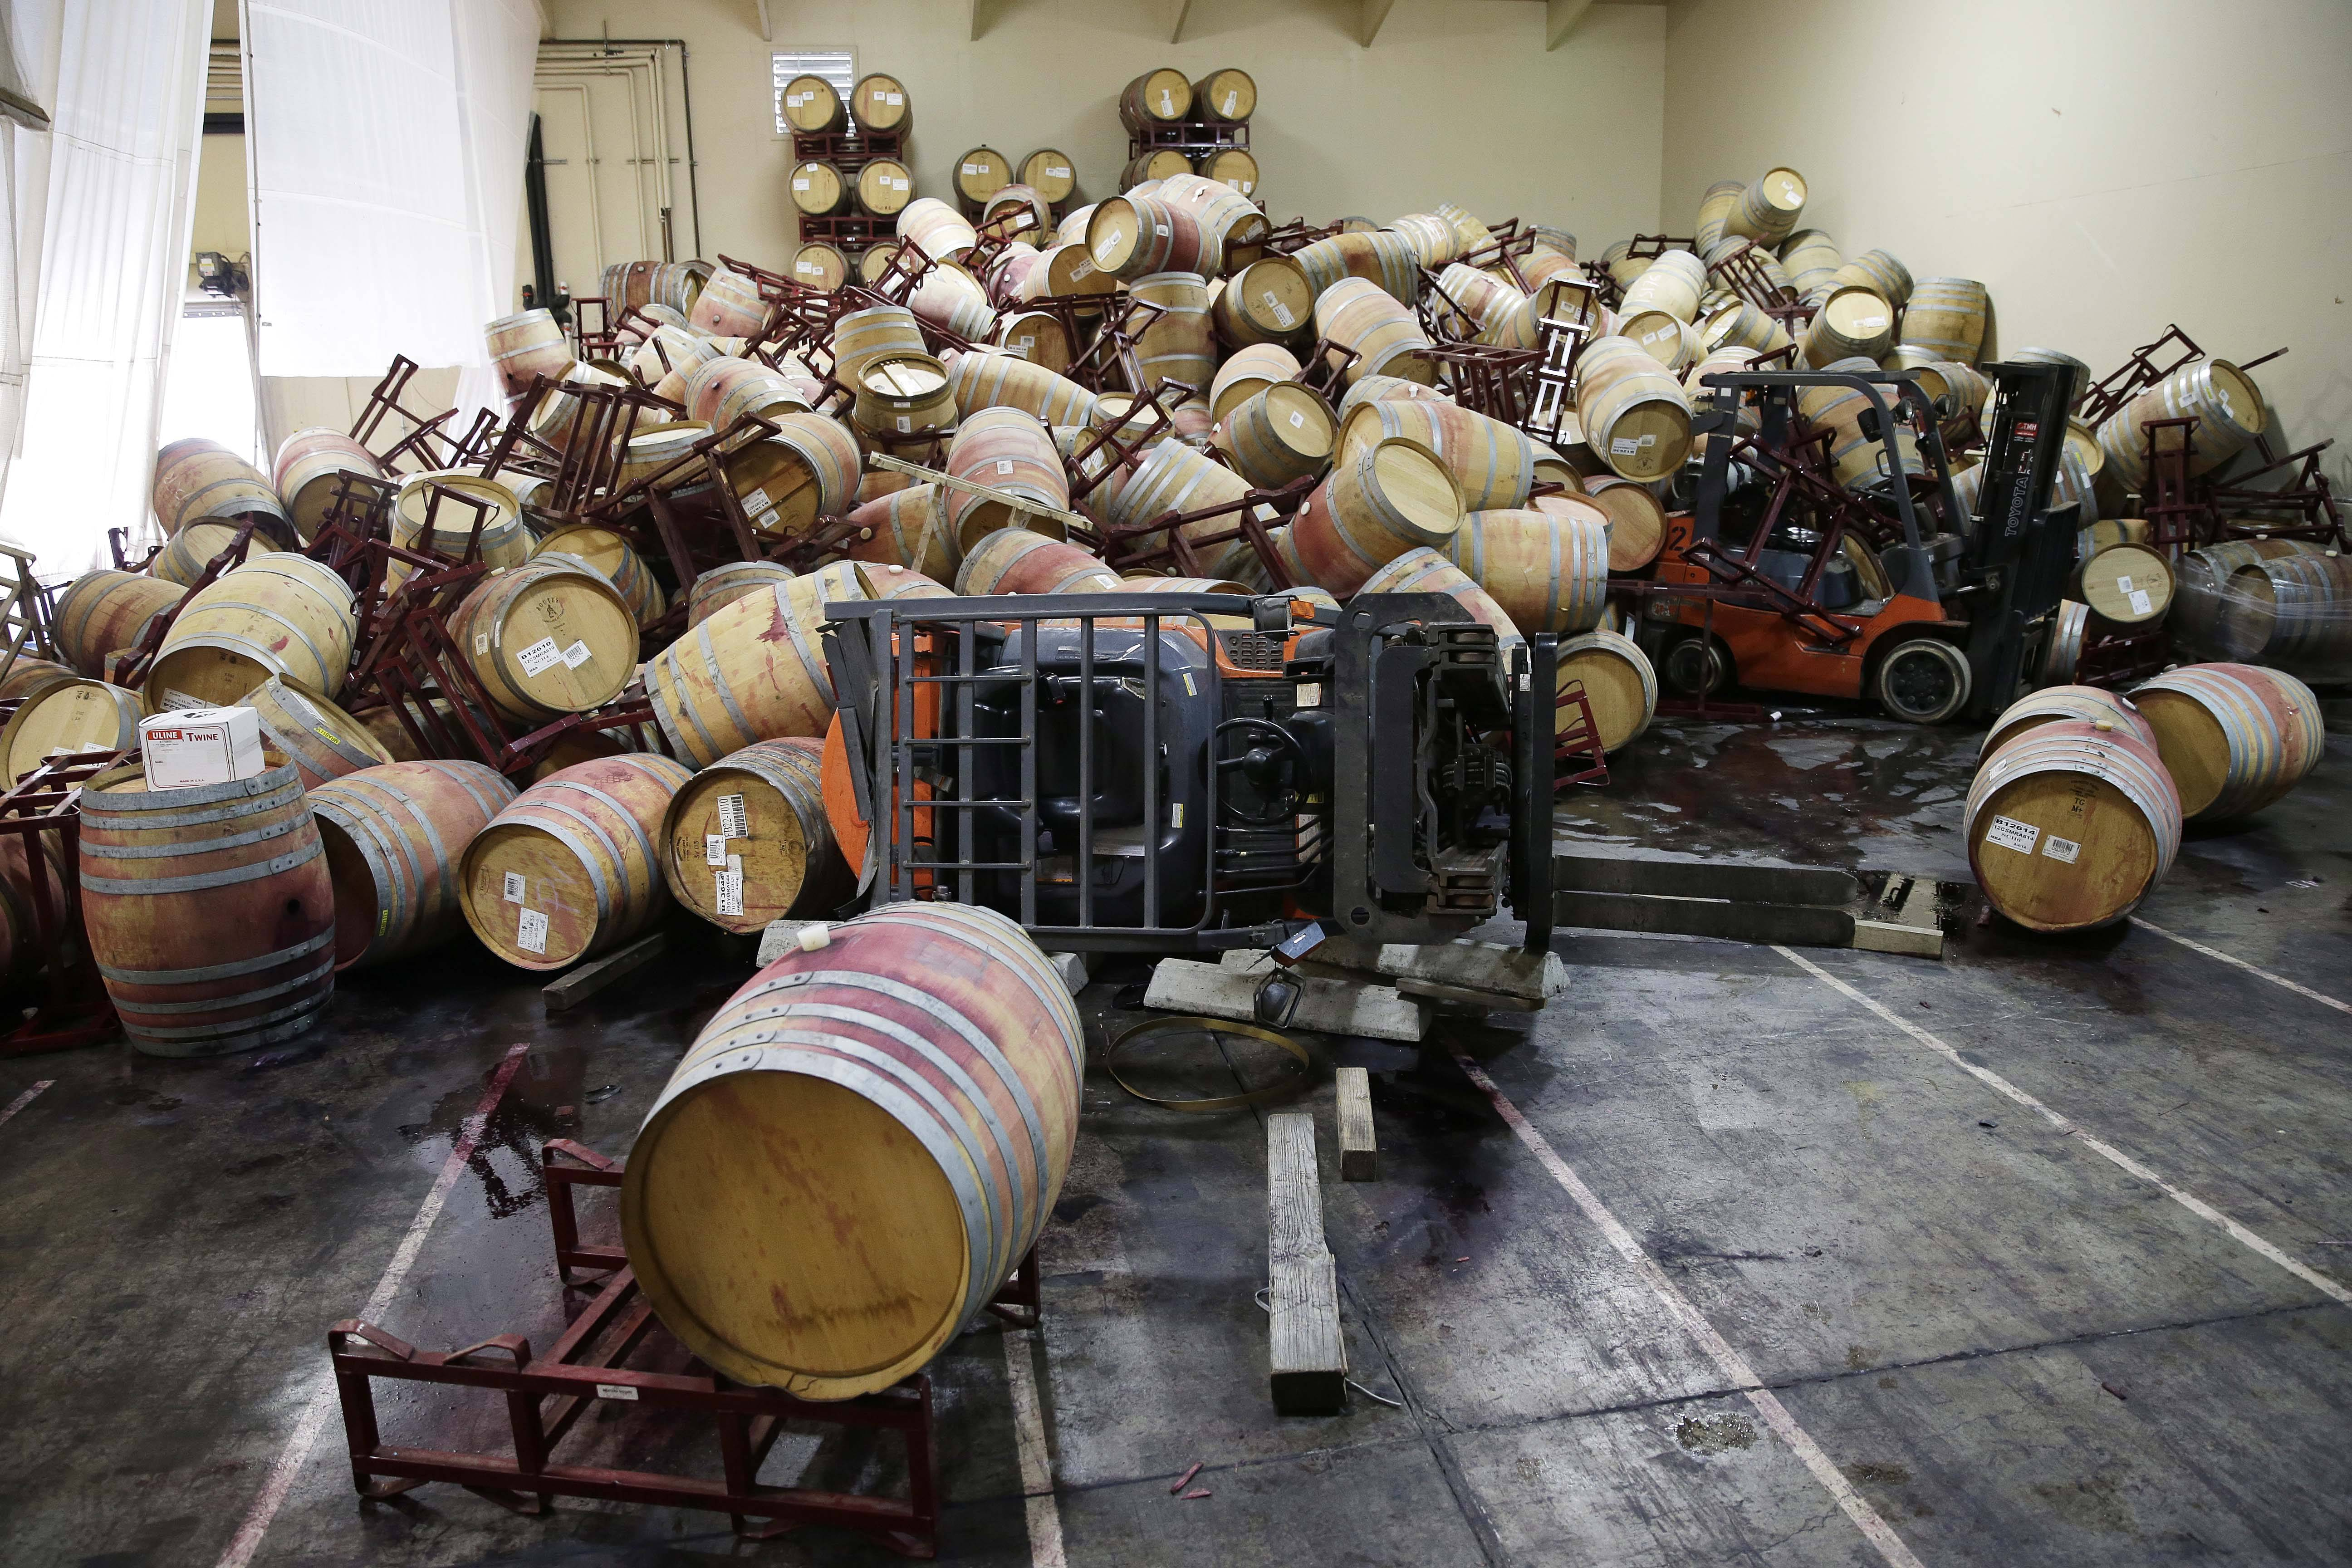 Some of the hundreds of earthquake damaged wine barrels at the Kieu Hoang Winery, Monday, Aug. 25, 2014, in Napa, Calif.